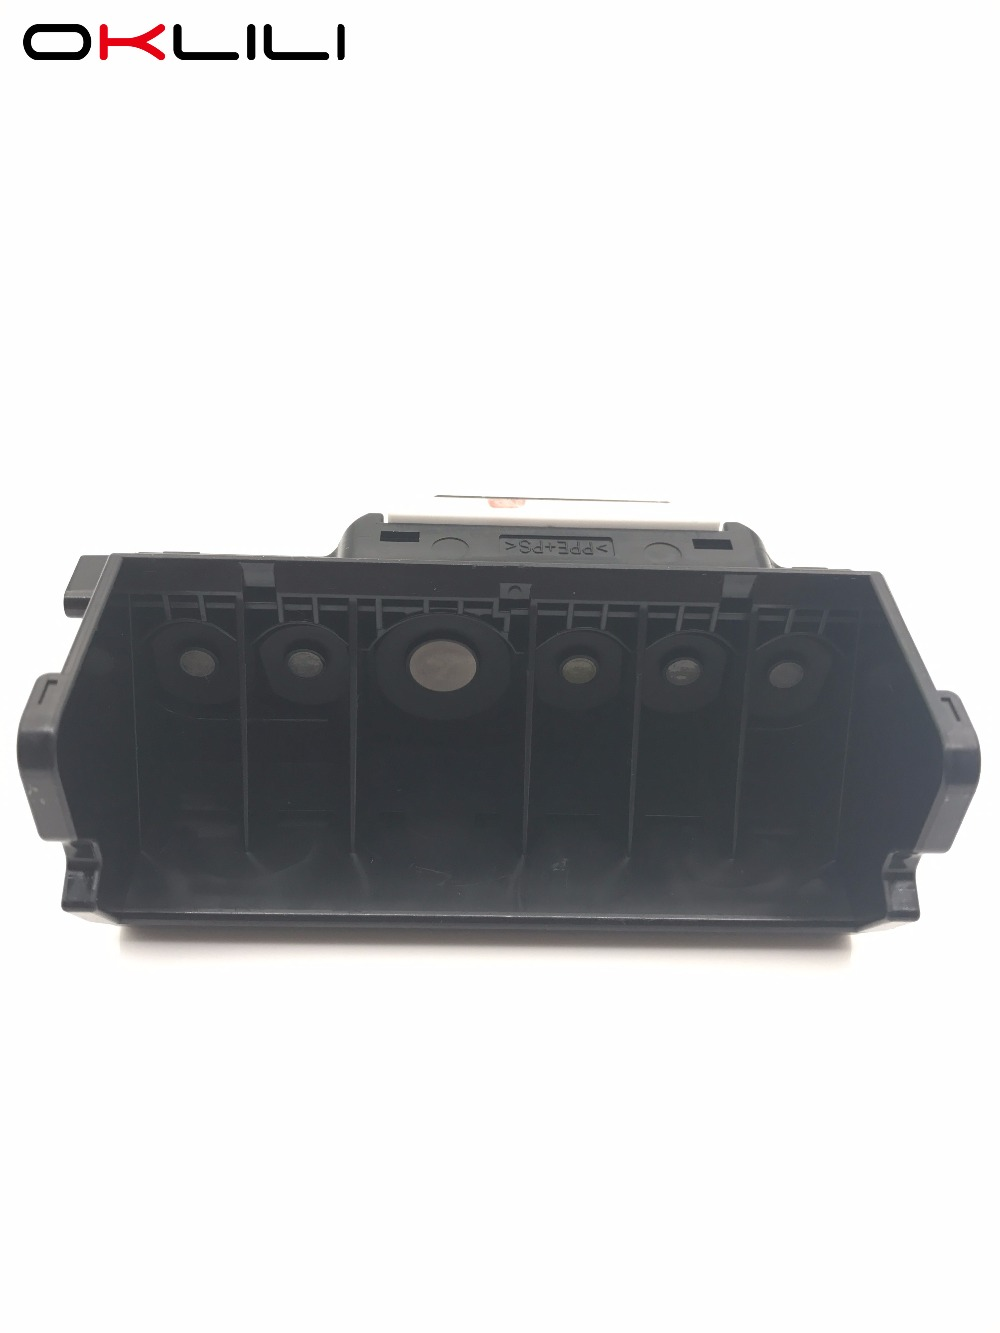 QY6-0078 QY6-0078-000 Printhead Printer Print Head for Canon MP990 MP996 MG6120 MG6140 MG6180 MG6280 MG8120 MG8180 MG8280 MG6250 oklili original qy6 0045 qy6 0045 000 printhead print head printer head for canon i550 pixus 550i